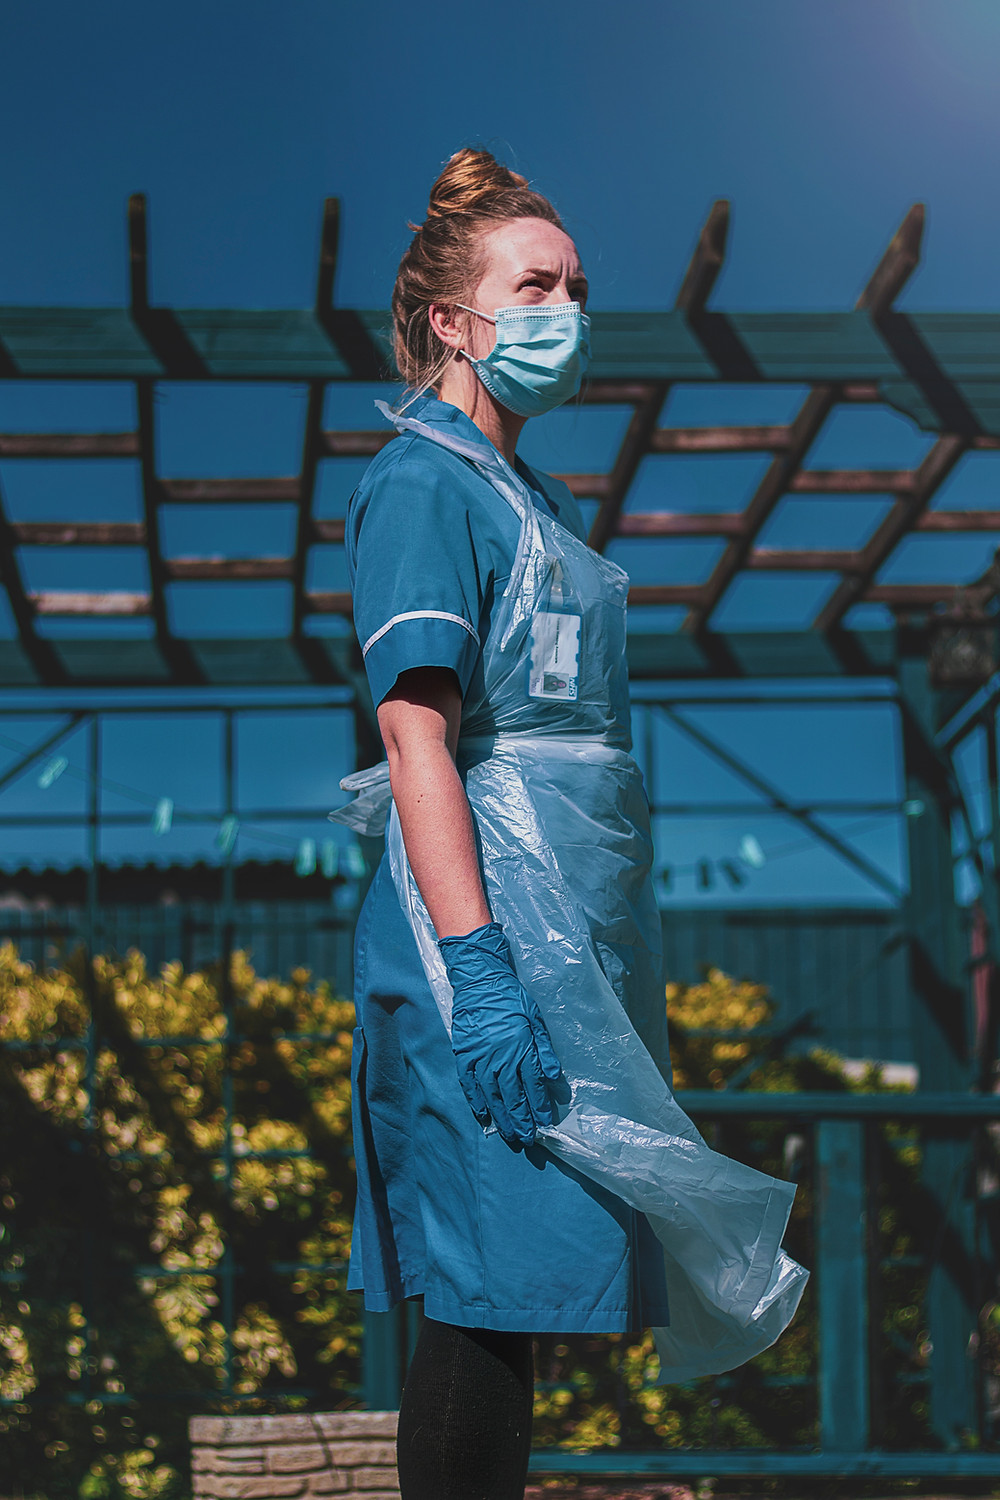 Female nurse standing in outside in the sun in full Covid-19 PPE.